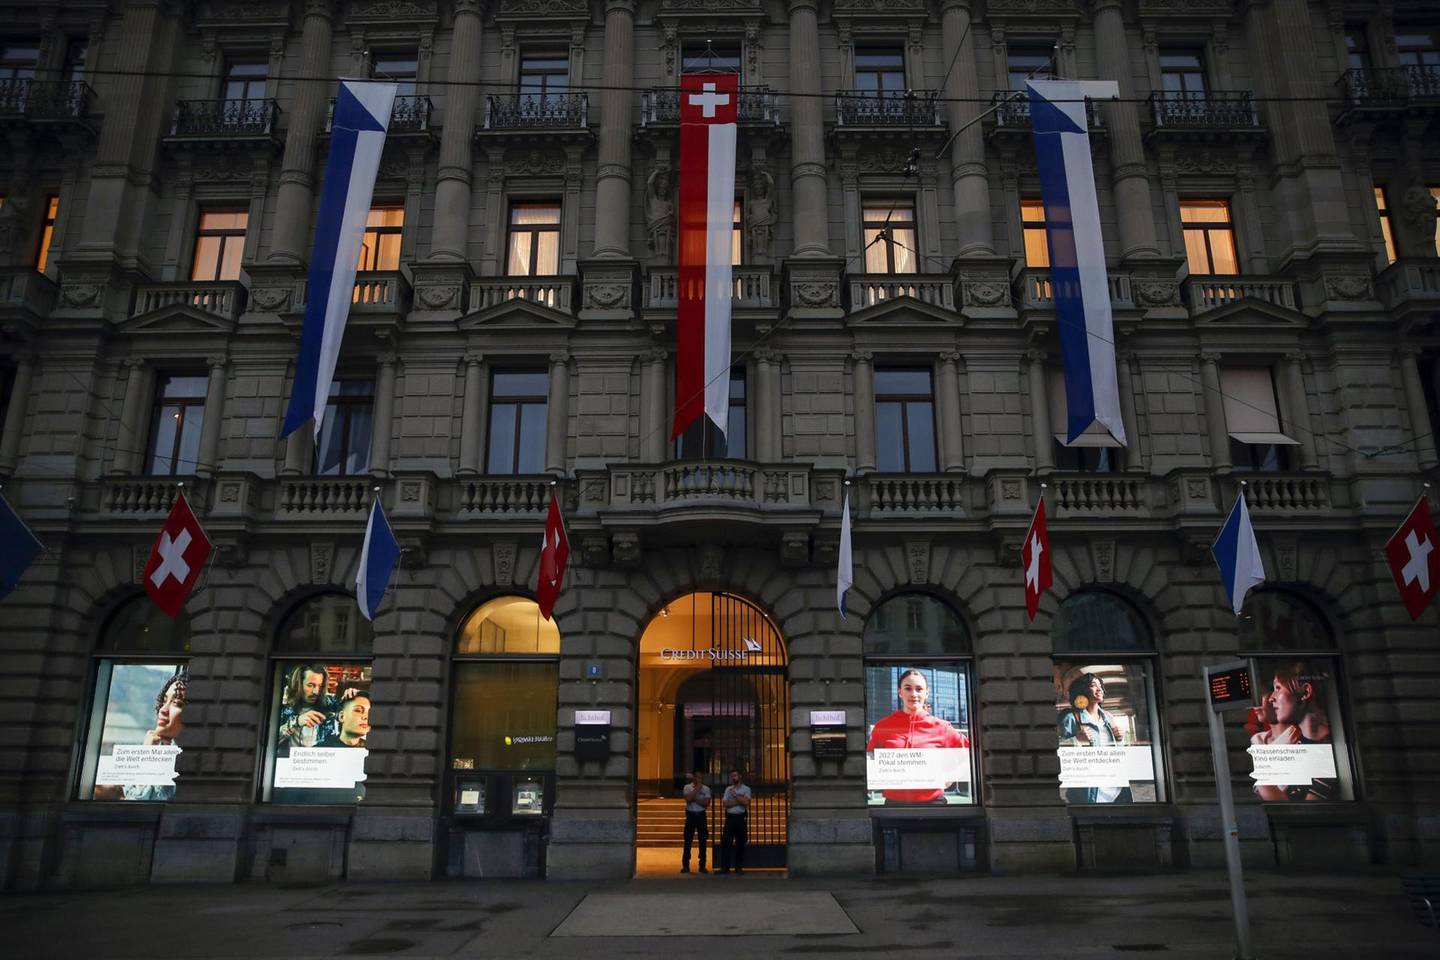 Security stands at the entrance to Credit Suisse Group AG's headquarters in Zurich, Switzerland, on Wednesday, Jul. 31, 2019.Photographer: Stefan Wermuth/Bloomberg